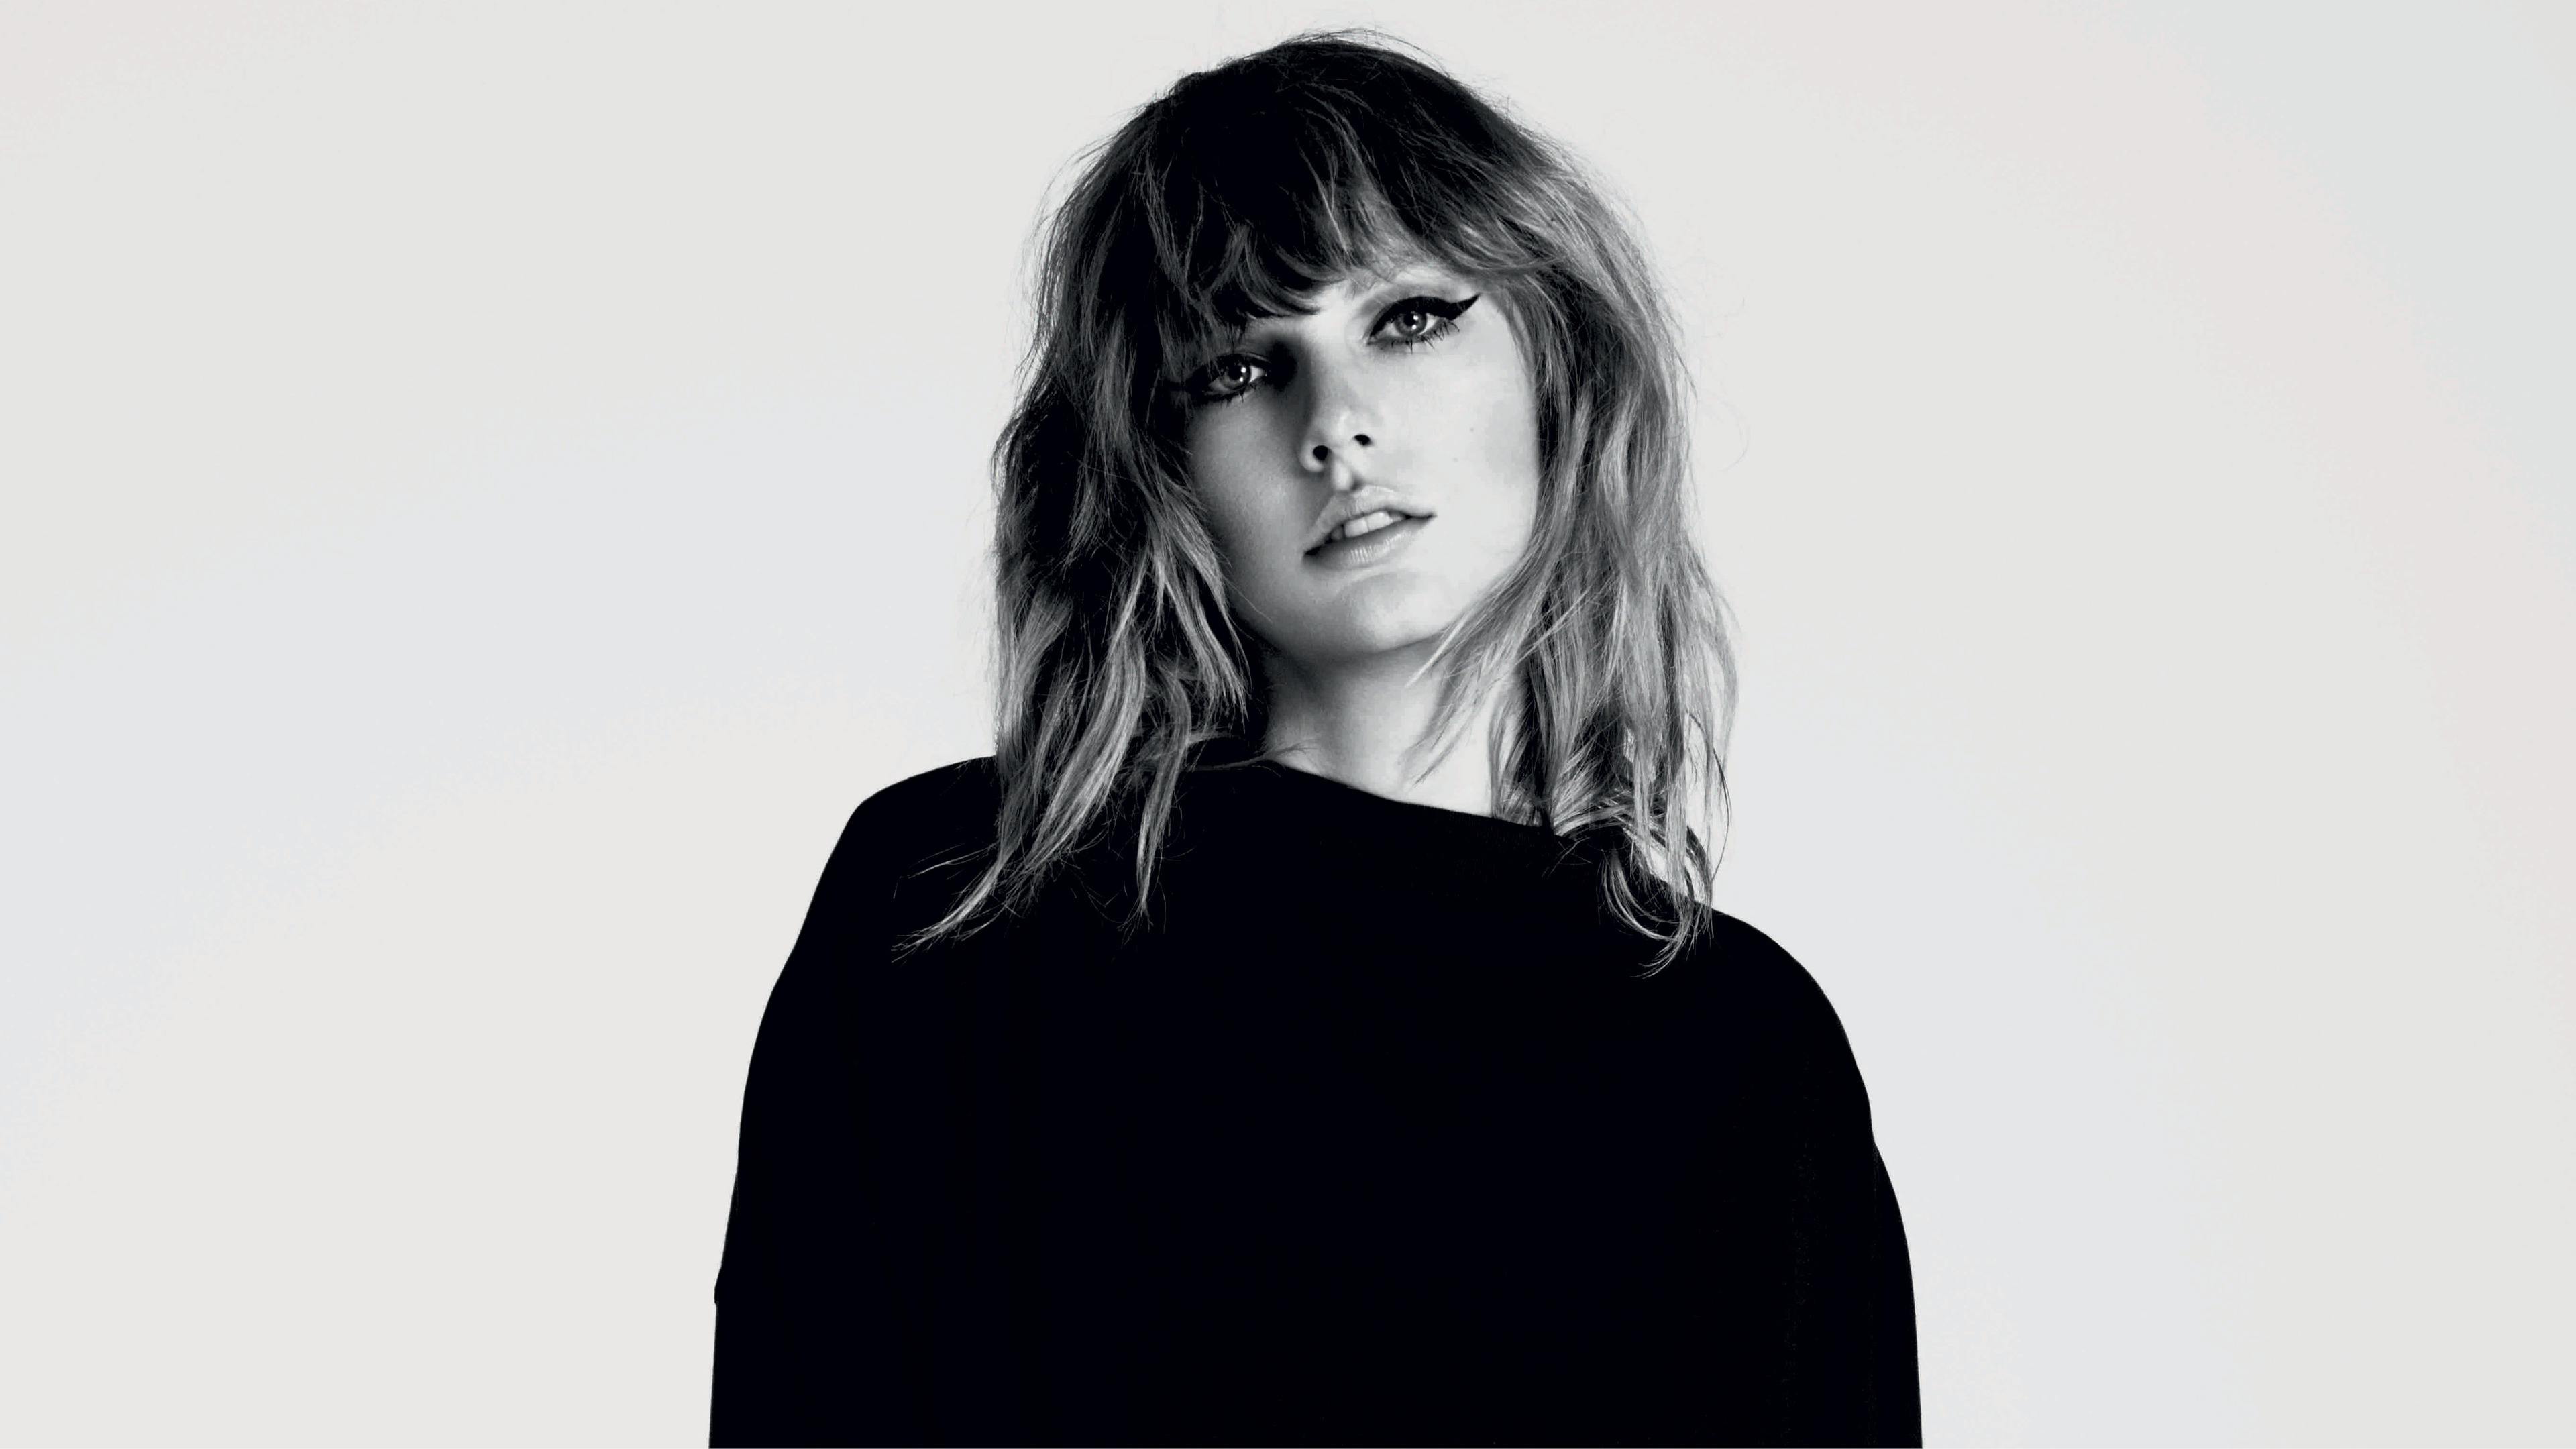 taylor swift monochrome 5k 1536950653 - Taylor Swift Monochrome 5k - taylor swift wallpapers, singer wallpapers, music wallpapers, monochrome wallpapers, hd-wallpapers, celebrities wallpapers, black and white wallpapers, 5k wallpapers, 4k-wallpapers